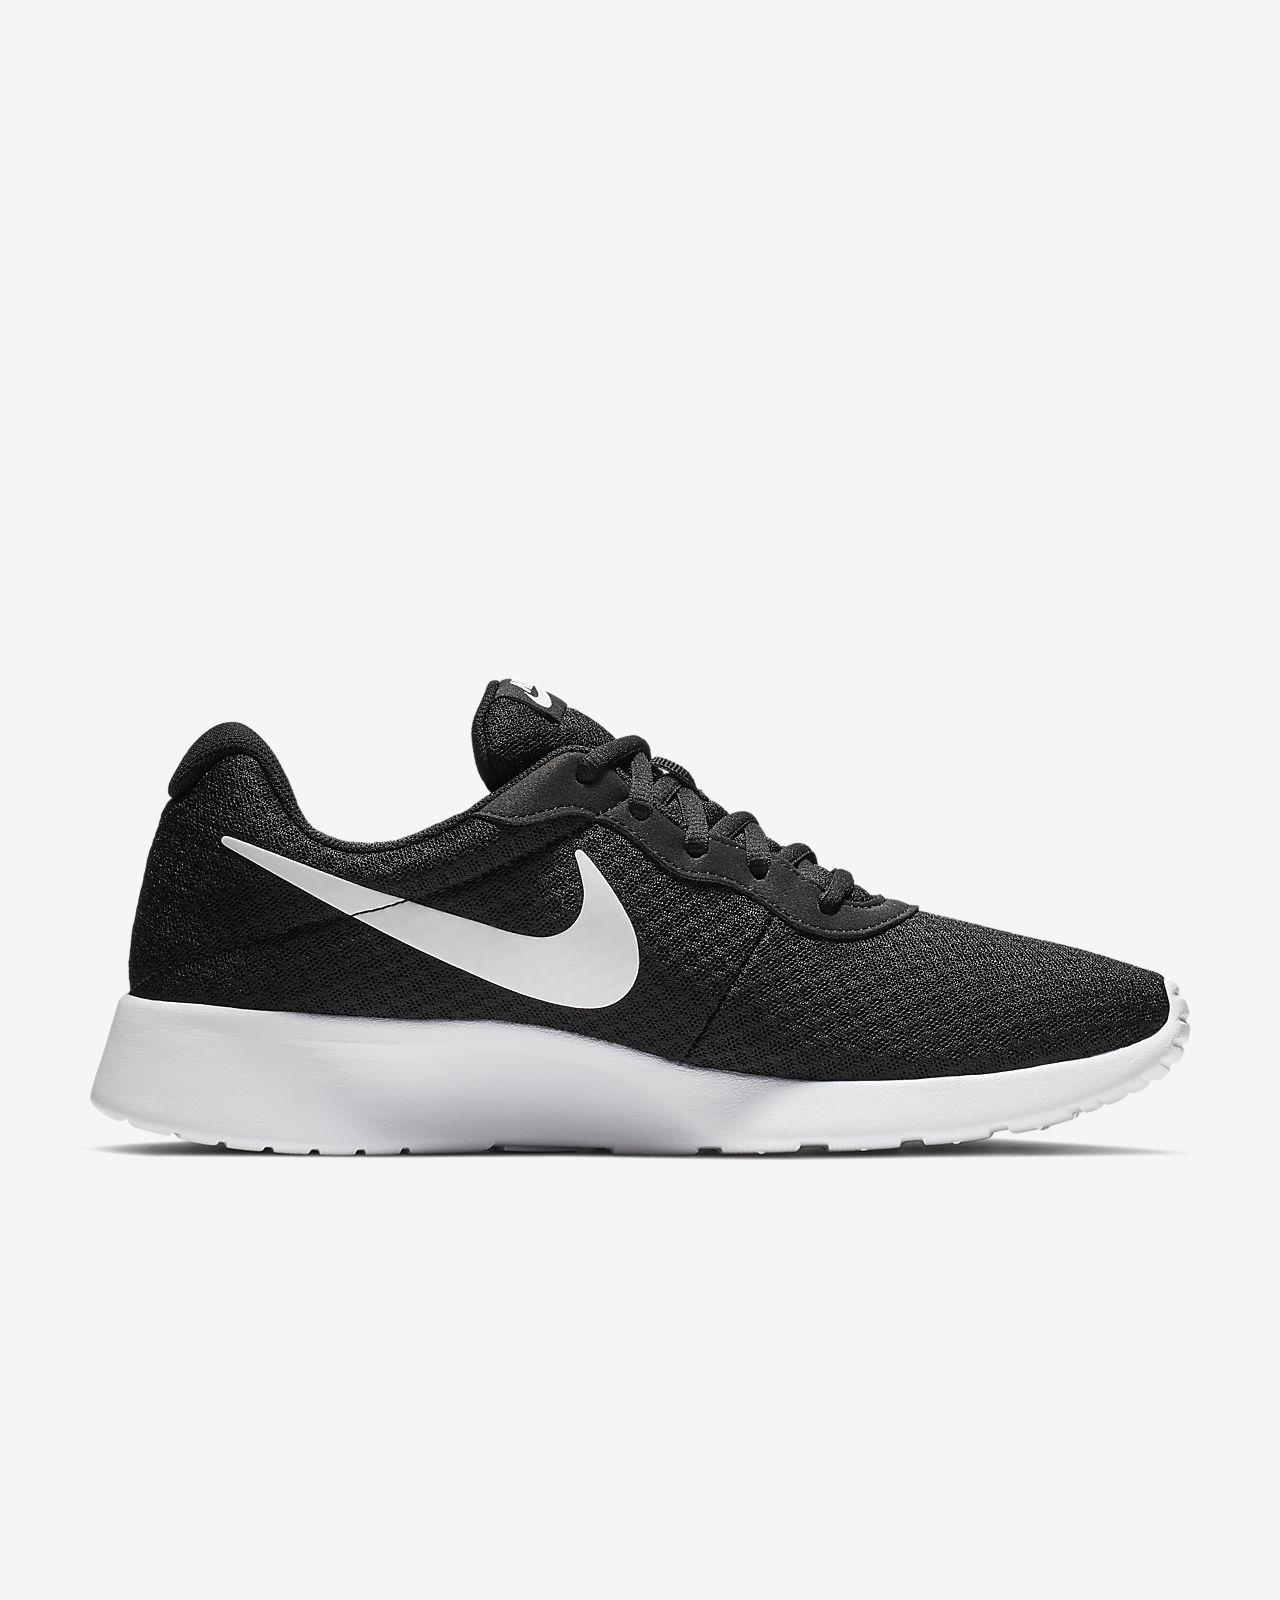 Low Resolution Nike Tanjun Men s Shoe Nike Tanjun Men s Shoe fa658d47f6af